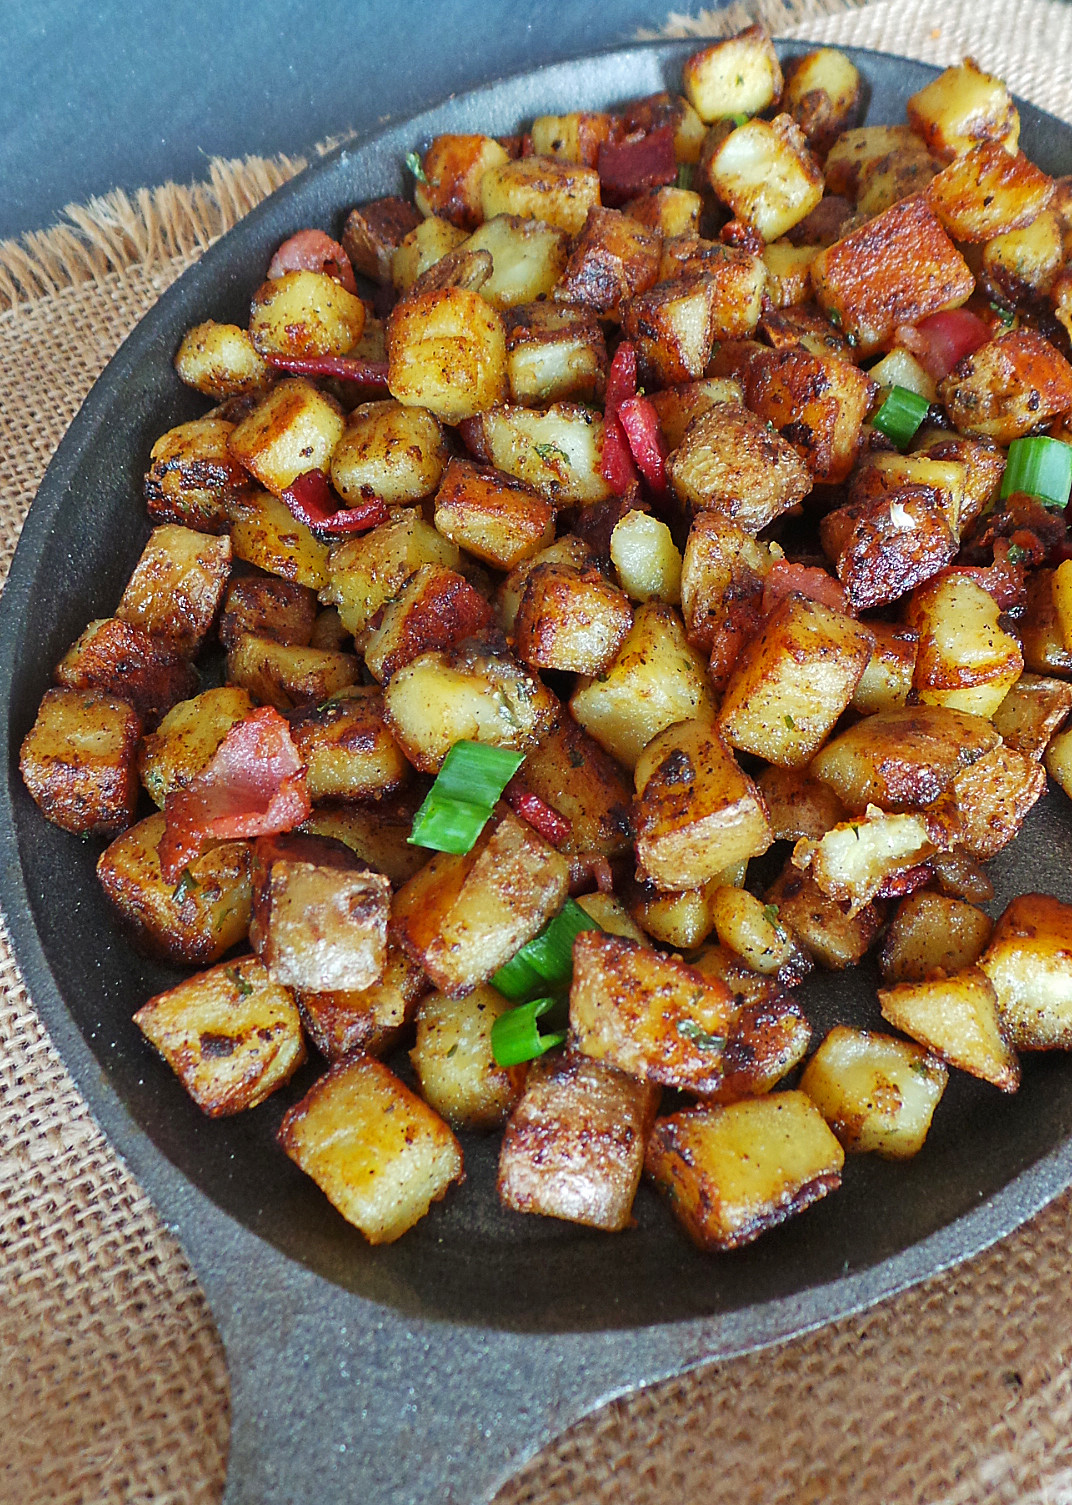 Breakfast Red Potatoes  home fries red potatoes